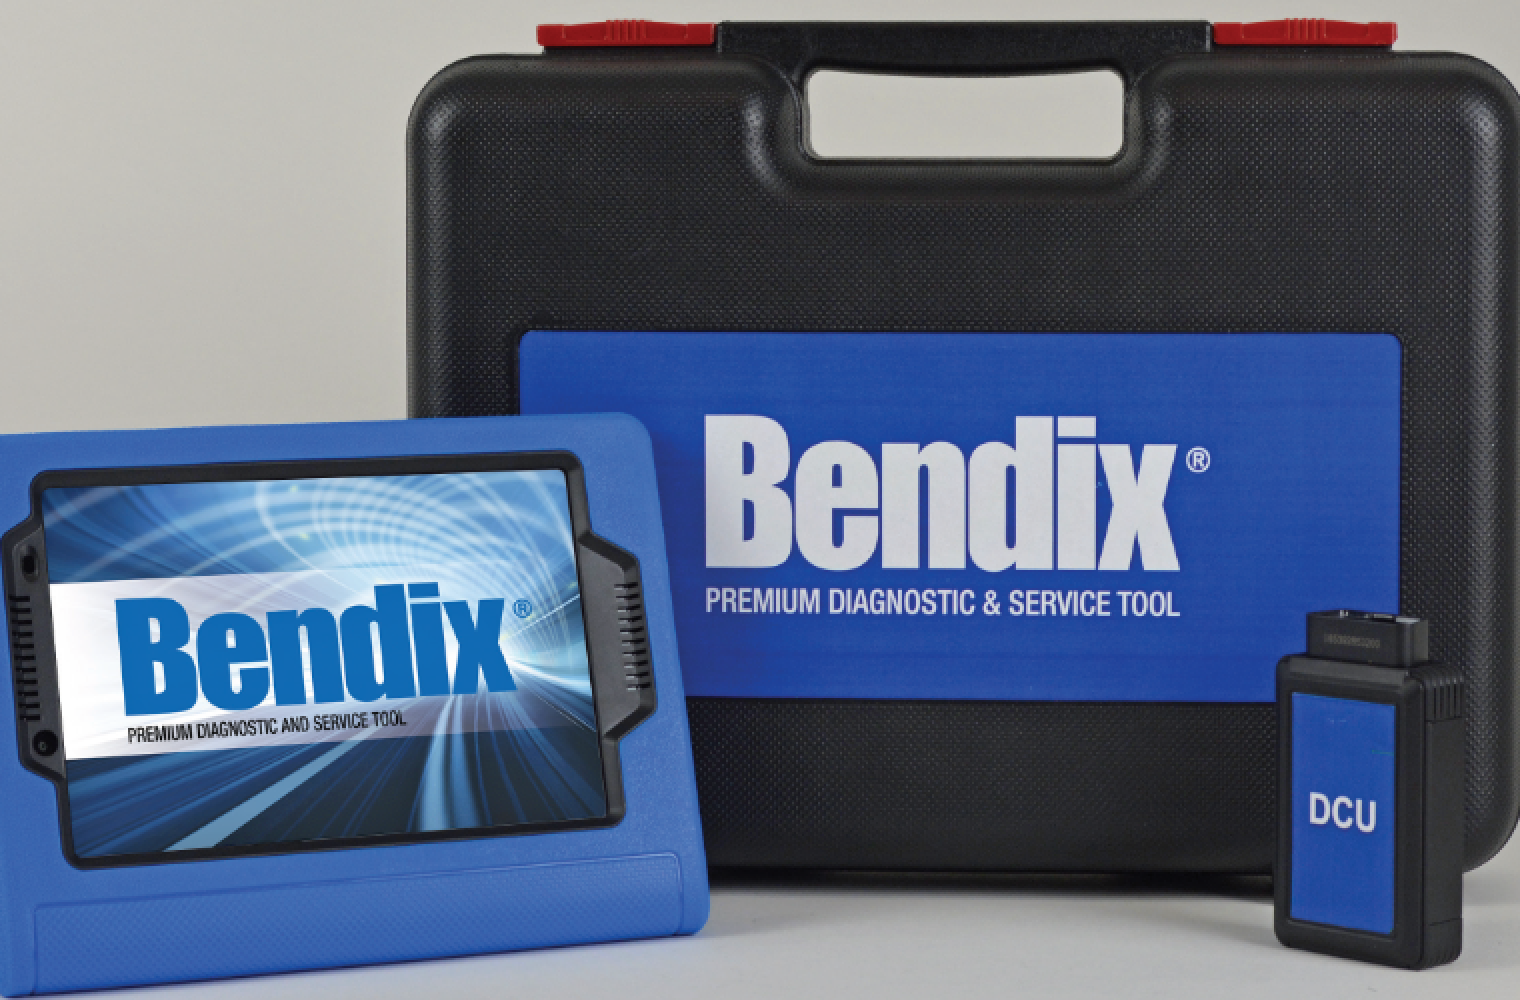 Super-fast Bendix diagnostic unit available exclusively from